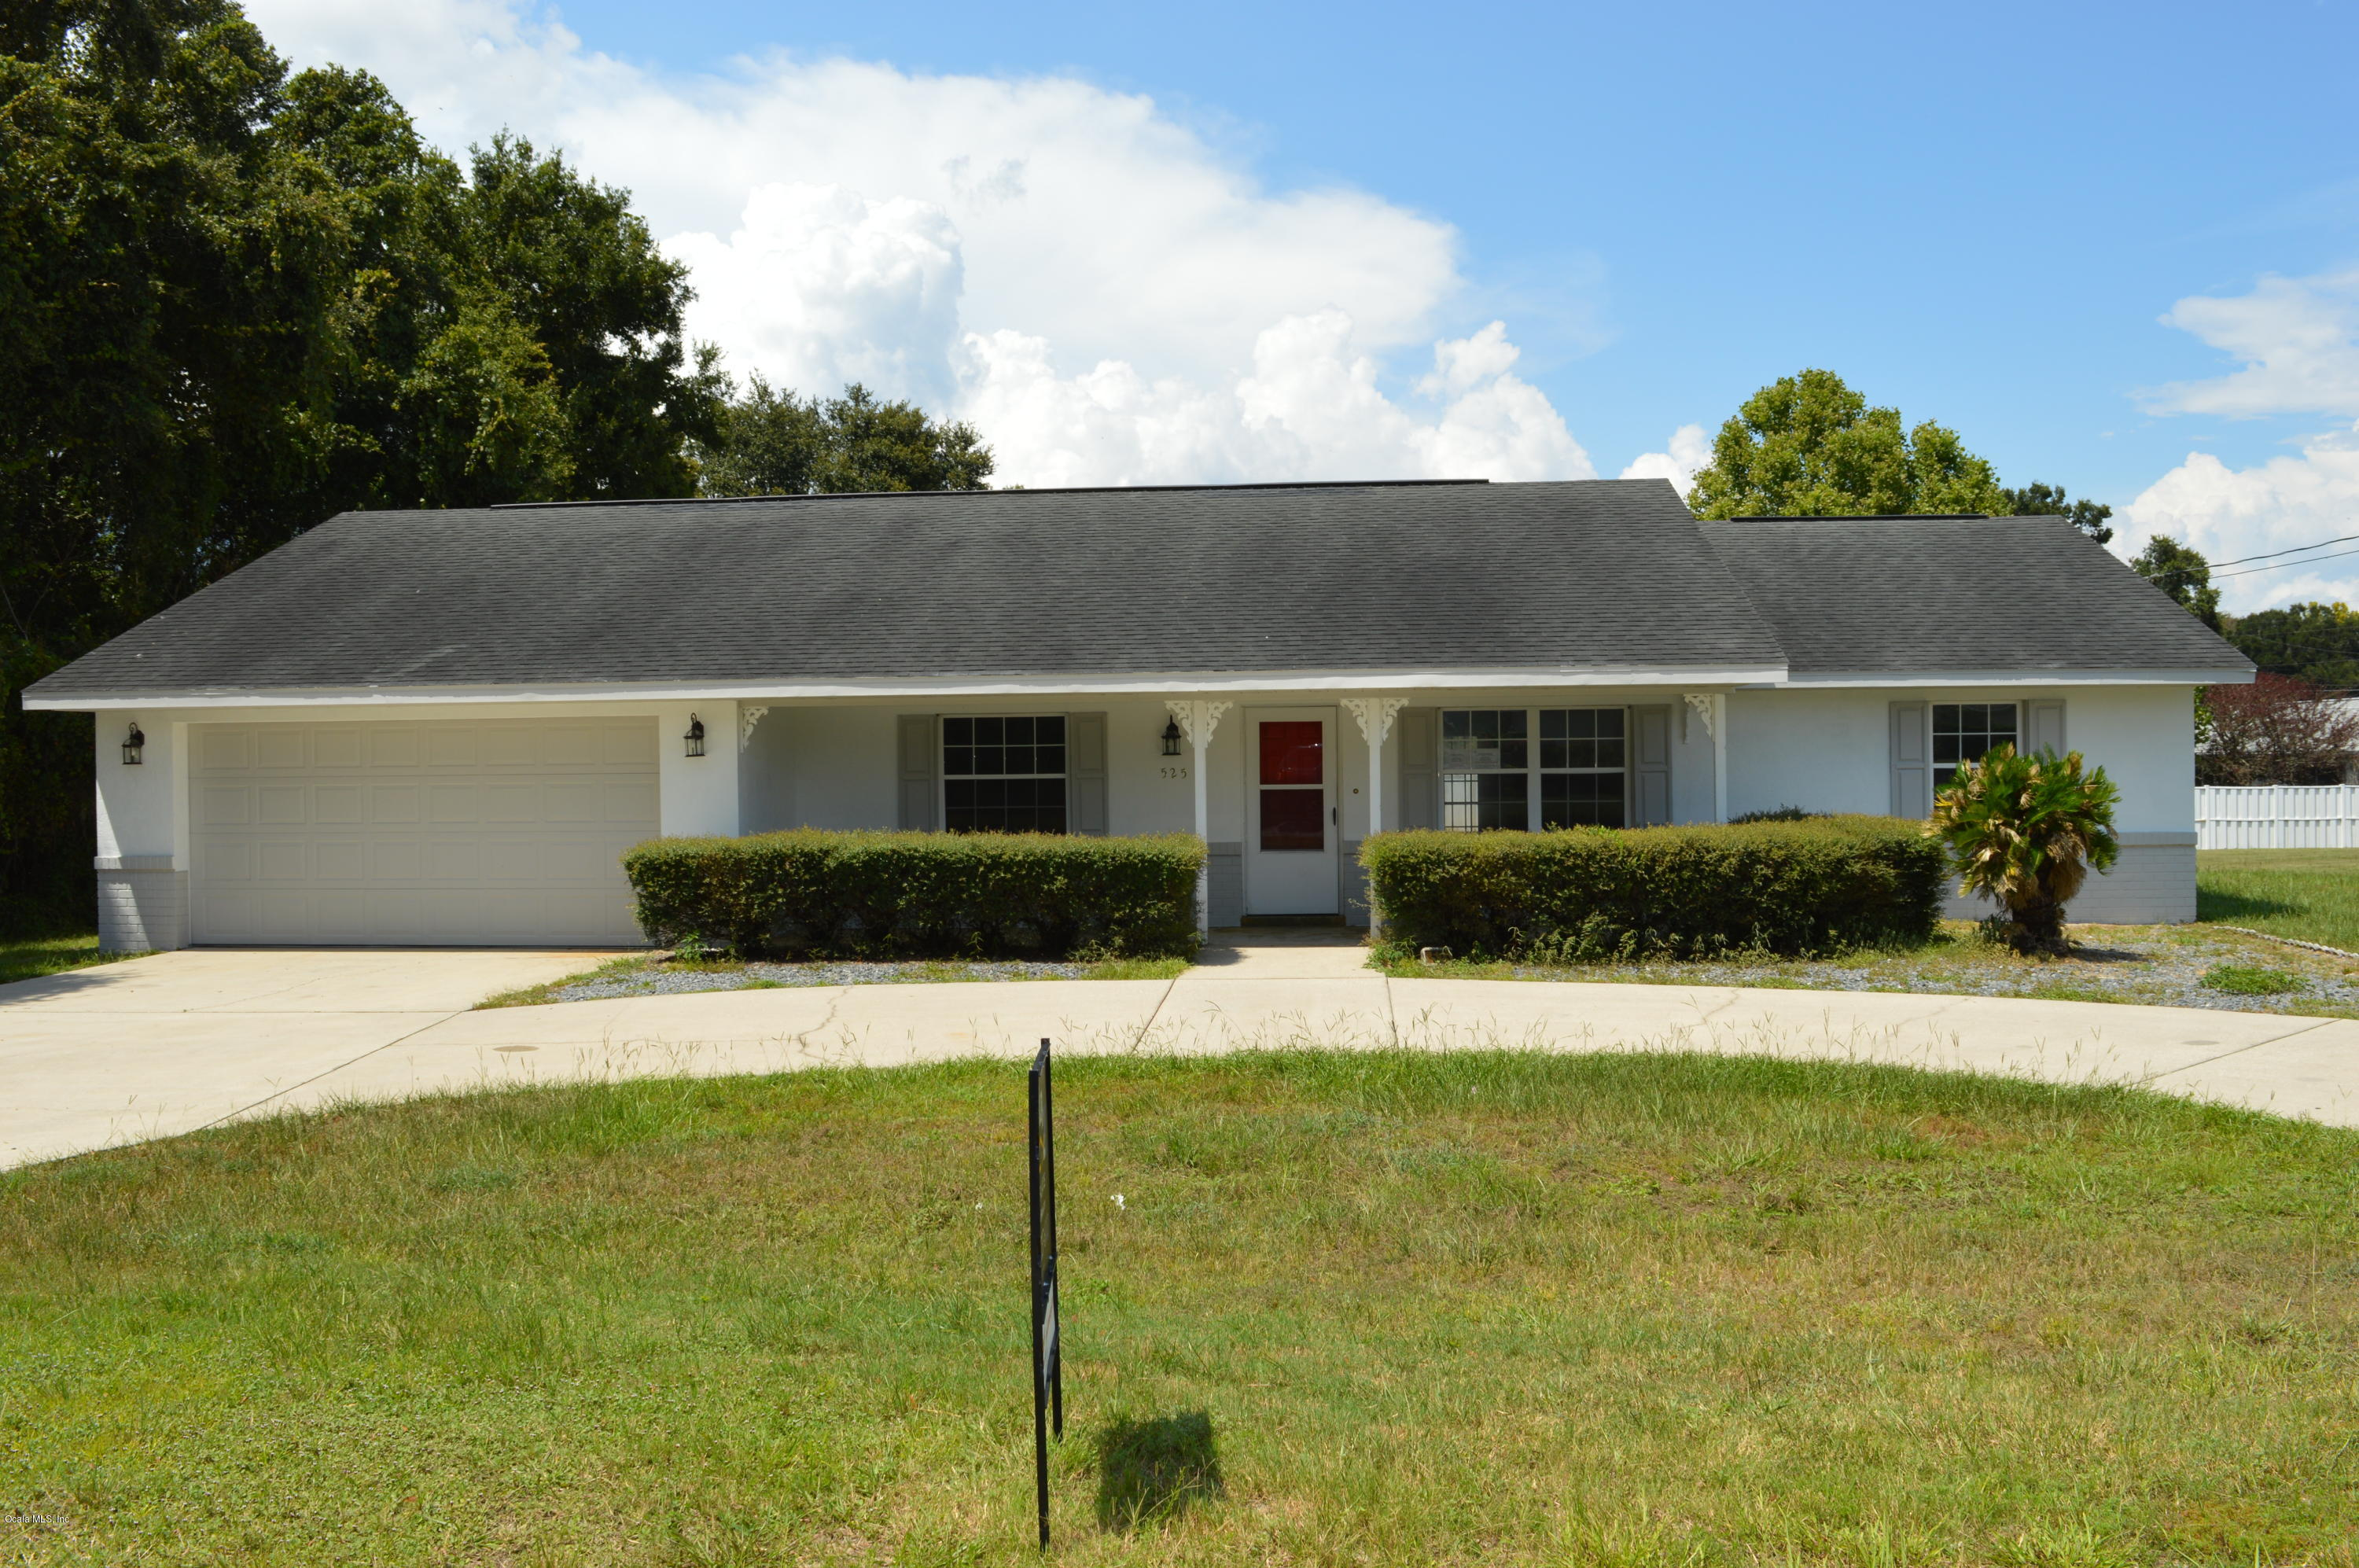 525 NE 37TH PLACE, OCALA, FL 34479